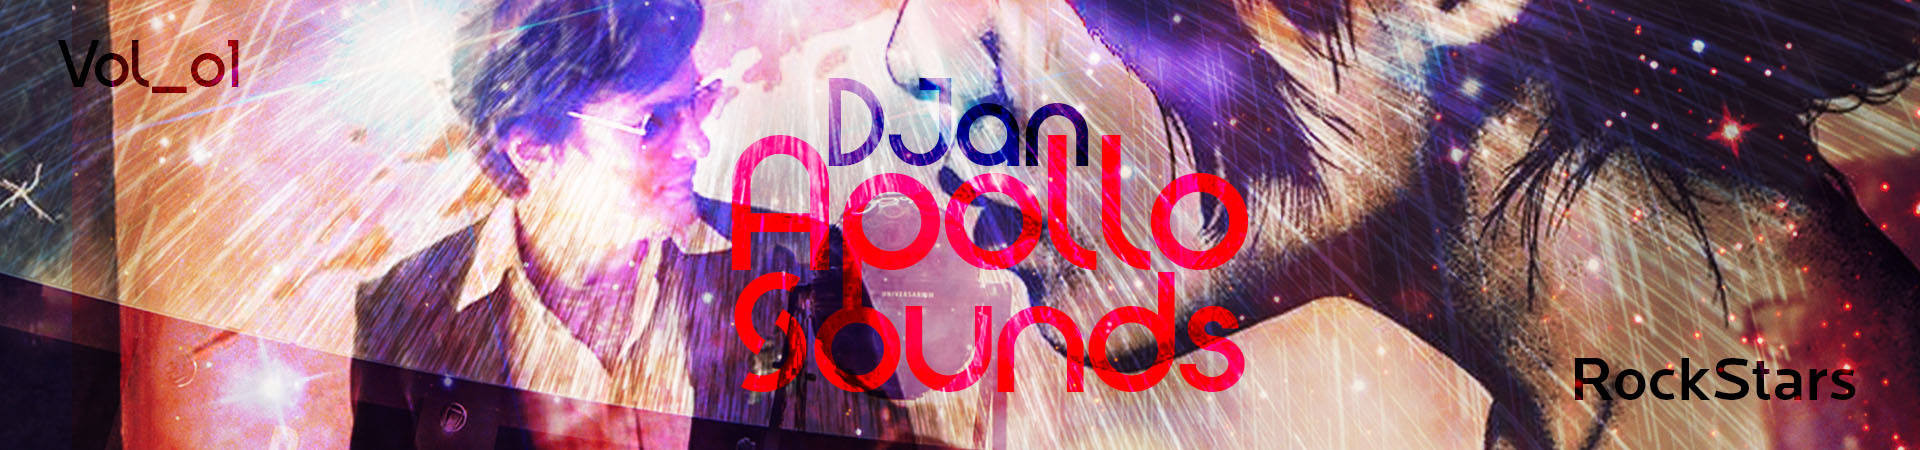 ApolloSounds Header 01